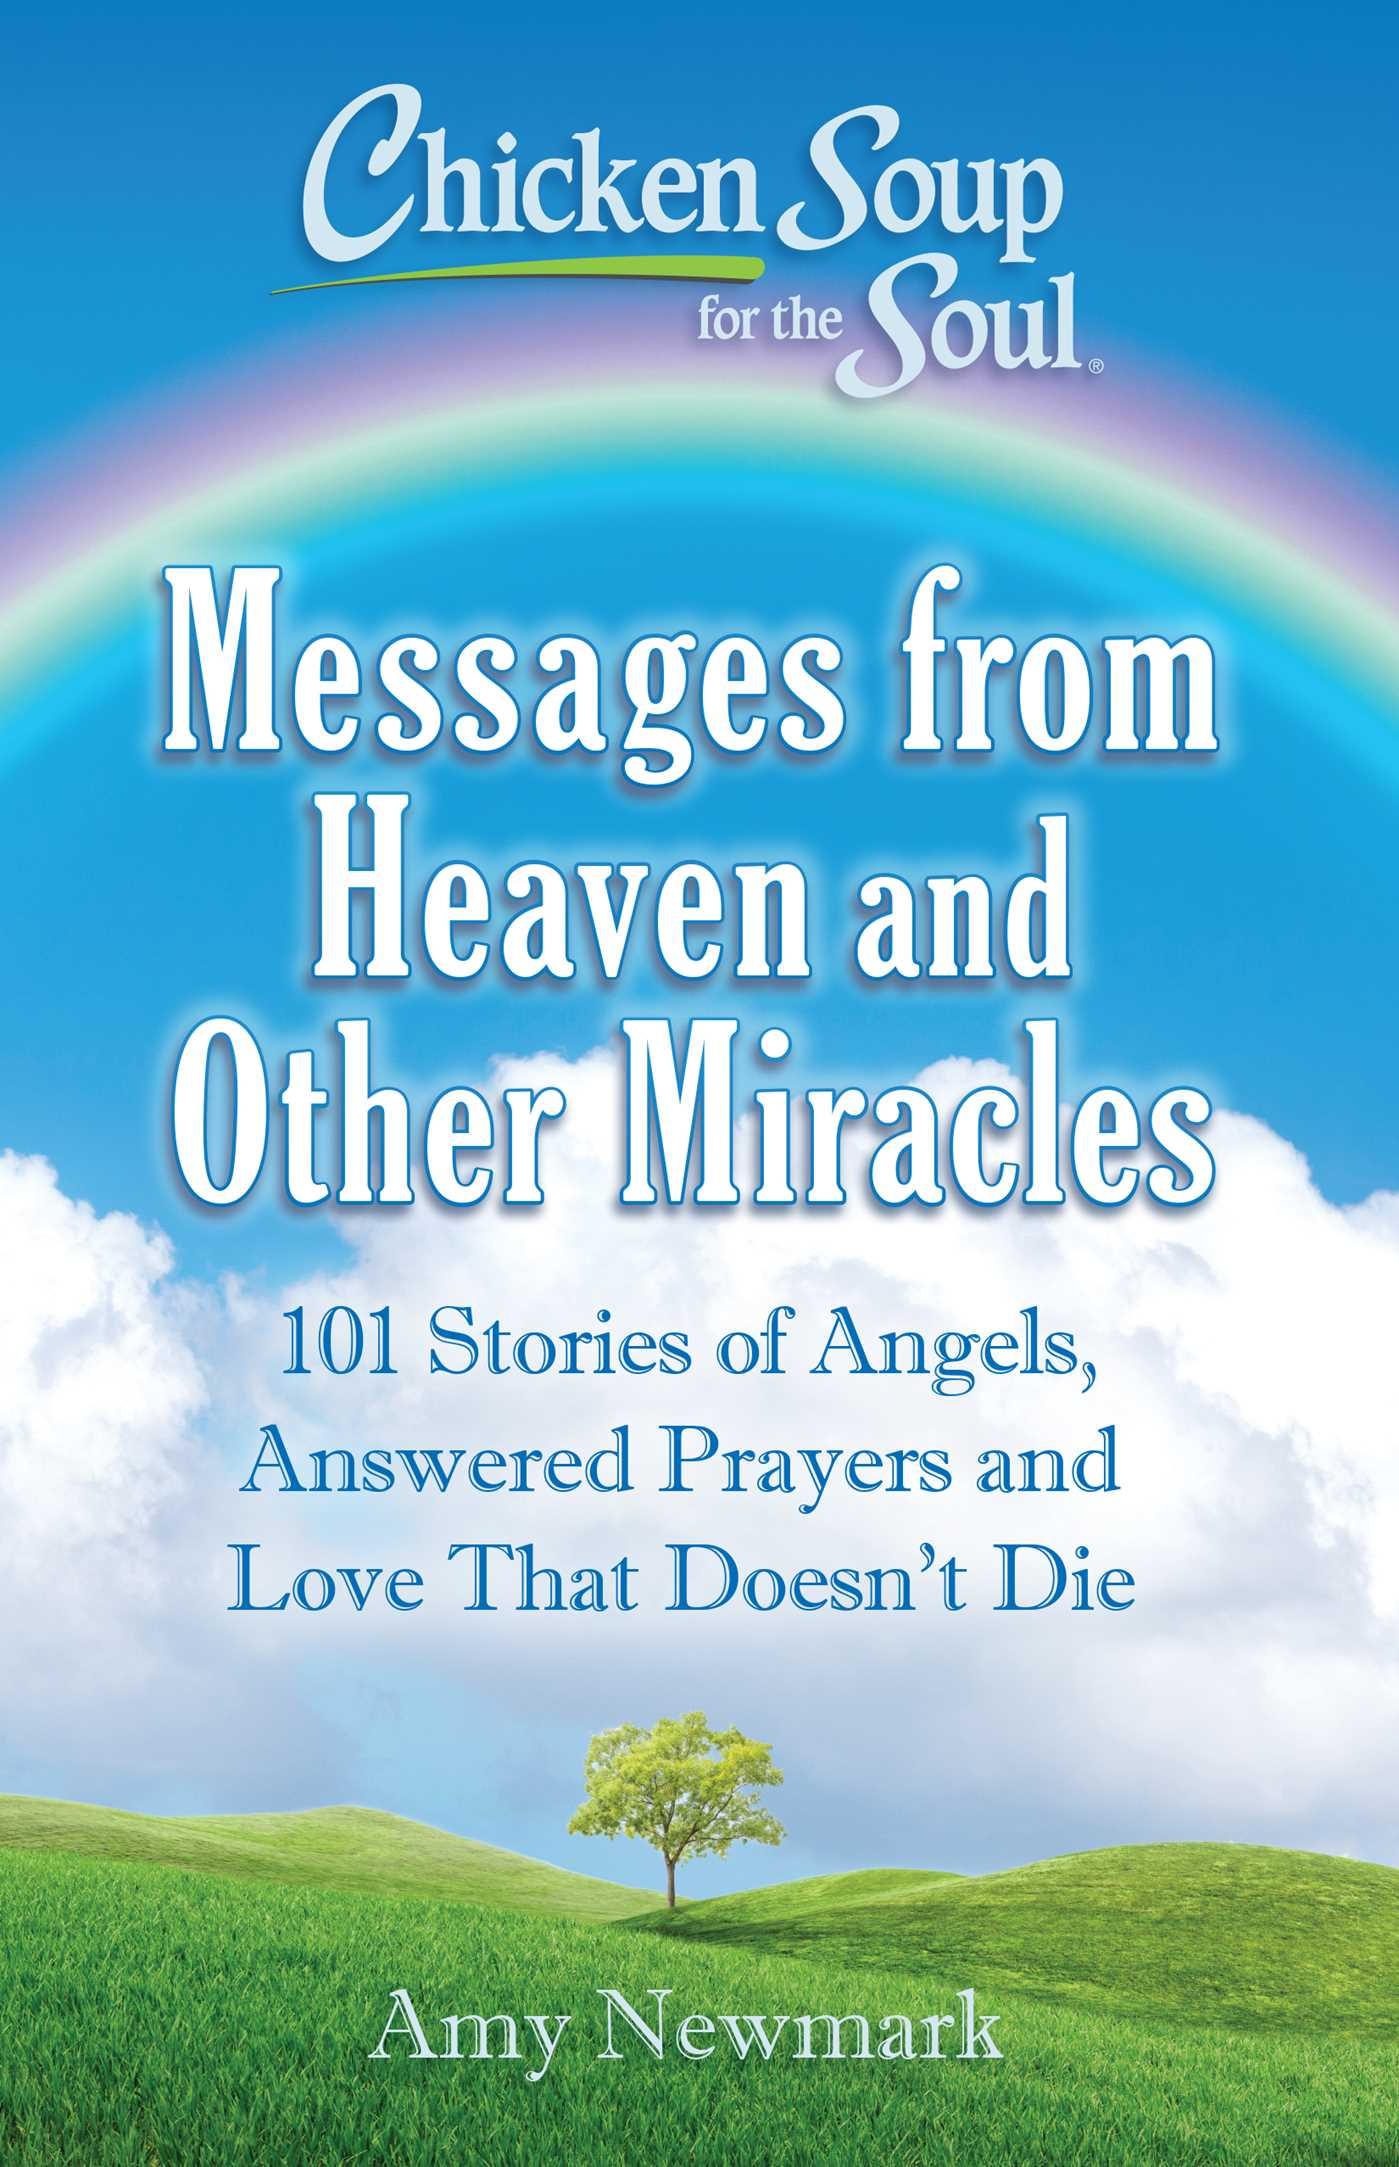 Chicken soup for the soul messages from heaven and other miracles 9781611599855 hr